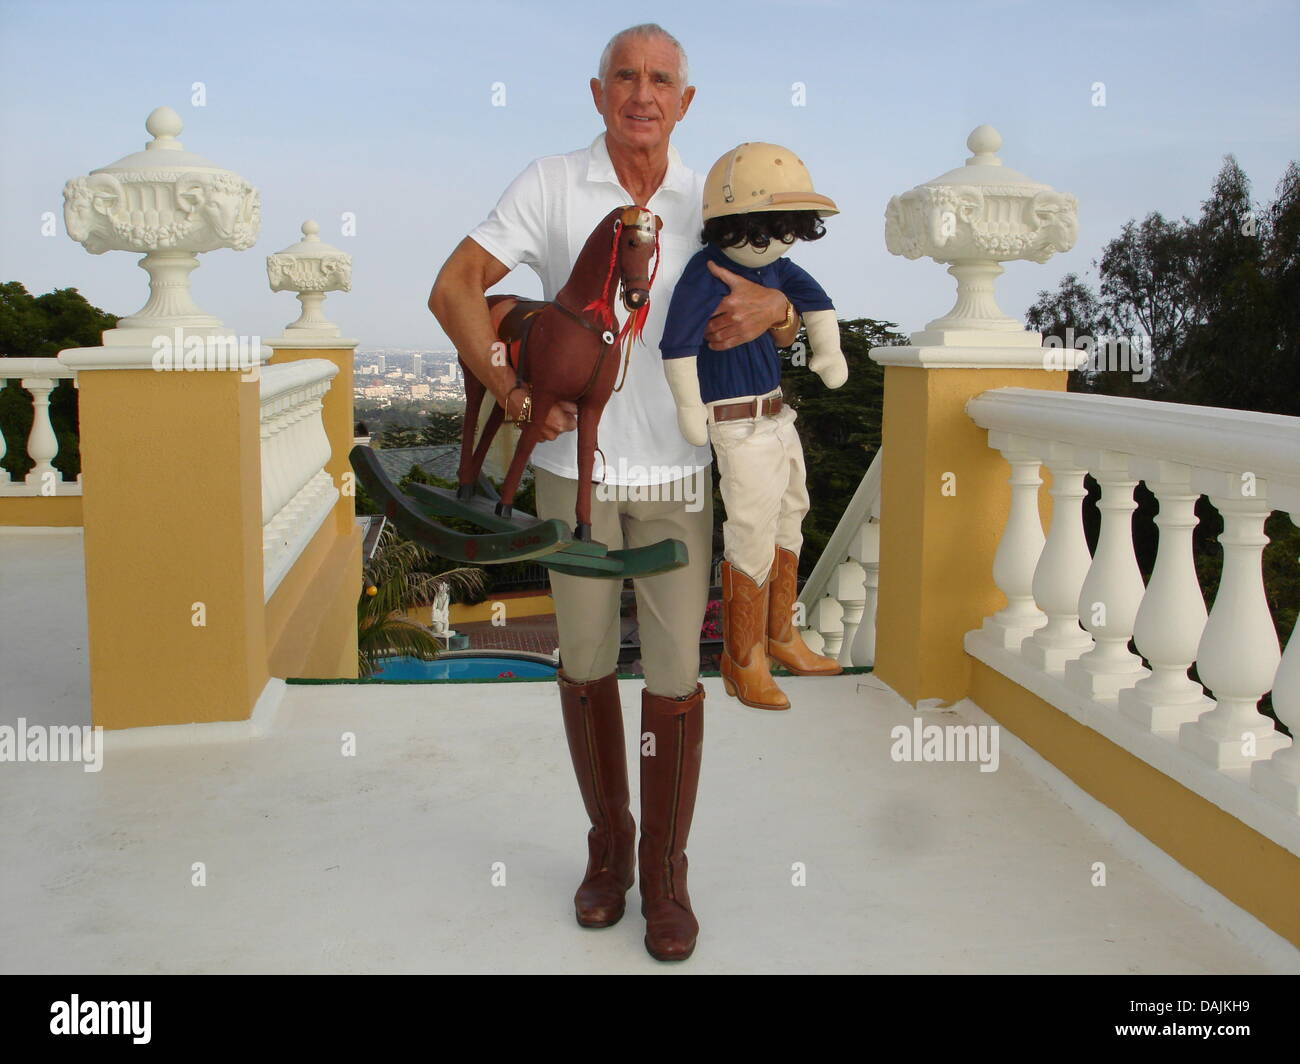 Frederic Prince Of Anhalt Poses Next To A Wooden Doll And A Horse On His  Terrace In Bel Air, Los Angeles, USA, Undated Handout. The 67 Year Old  Bought The ...